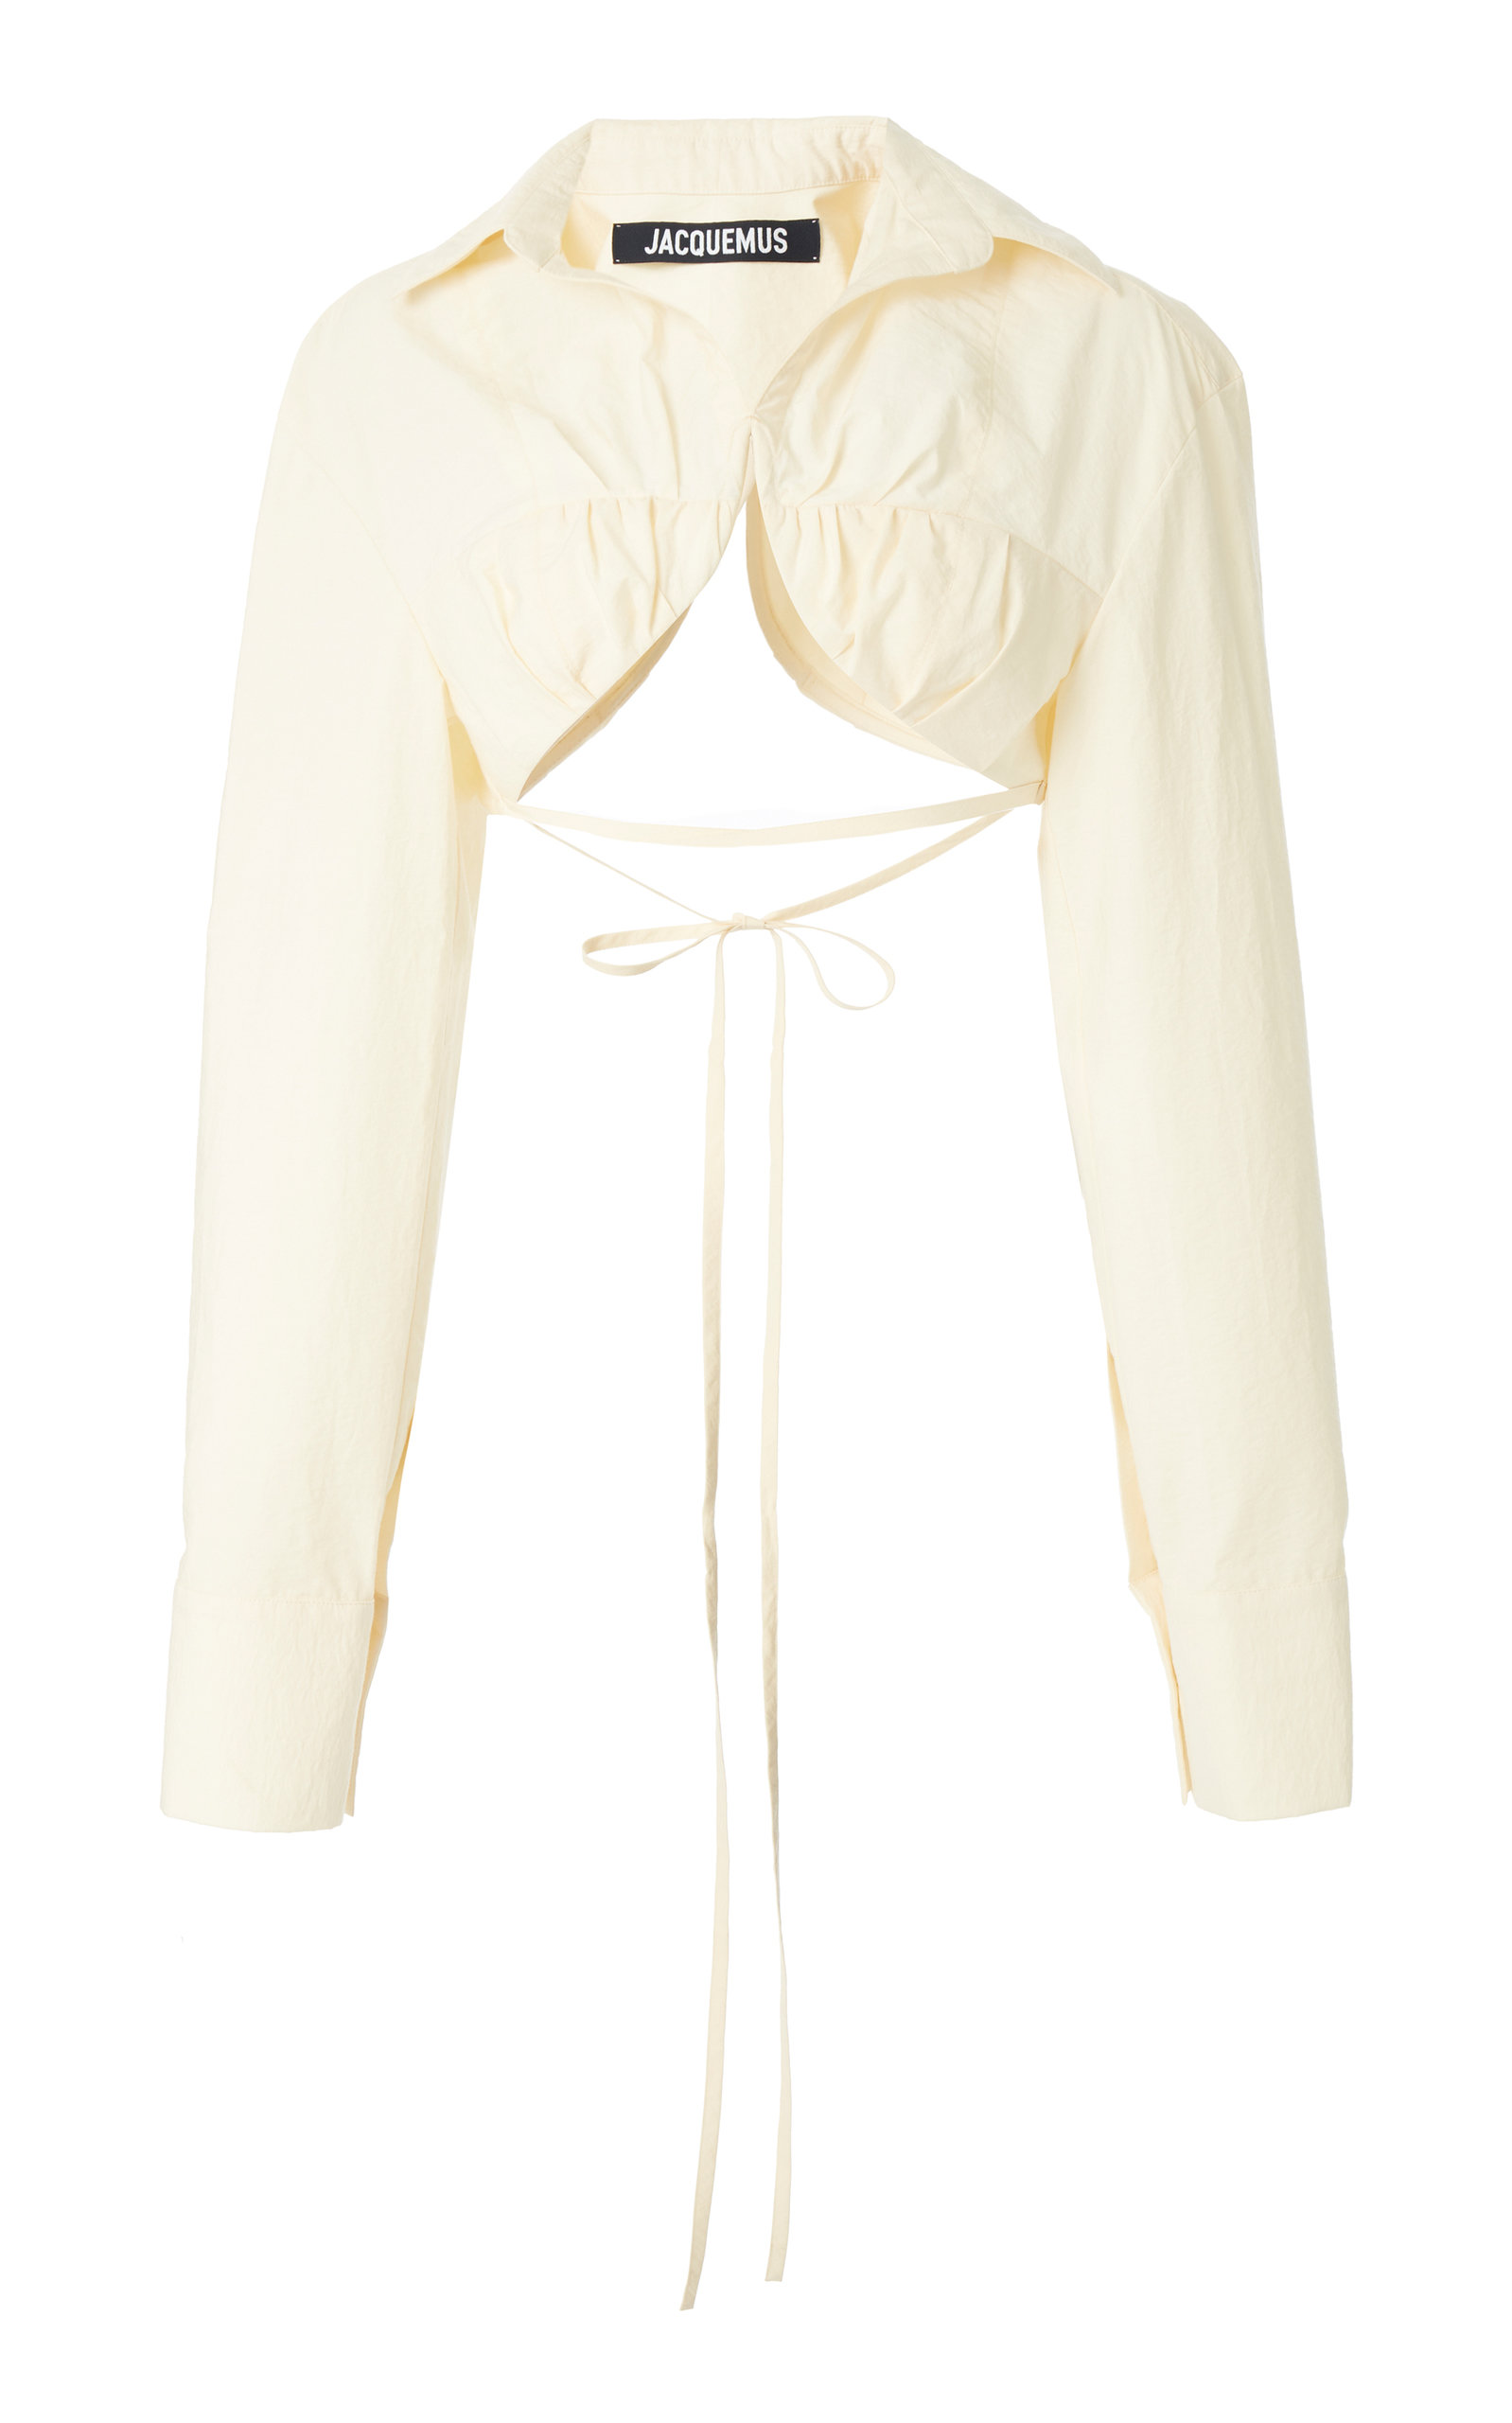 Jacquemus Baci Tie-detailed Cotton-blend Cropped Shirt In White